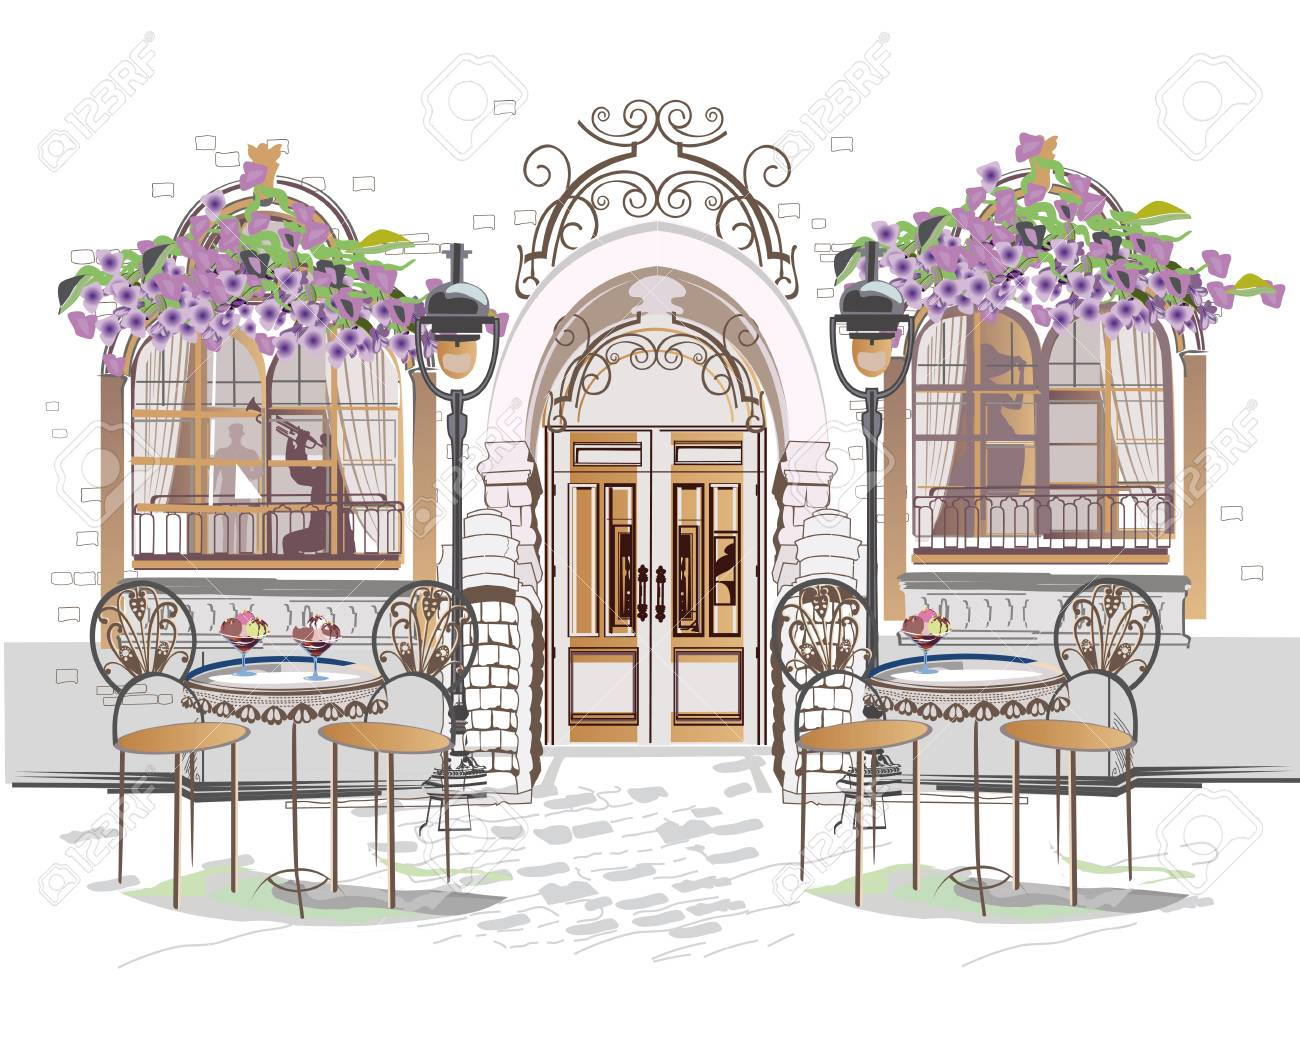 Series of backgrounds decorated with flowers, old town views and street cafes. Hand drawn vector architectural background with historic buildings. - 120432103